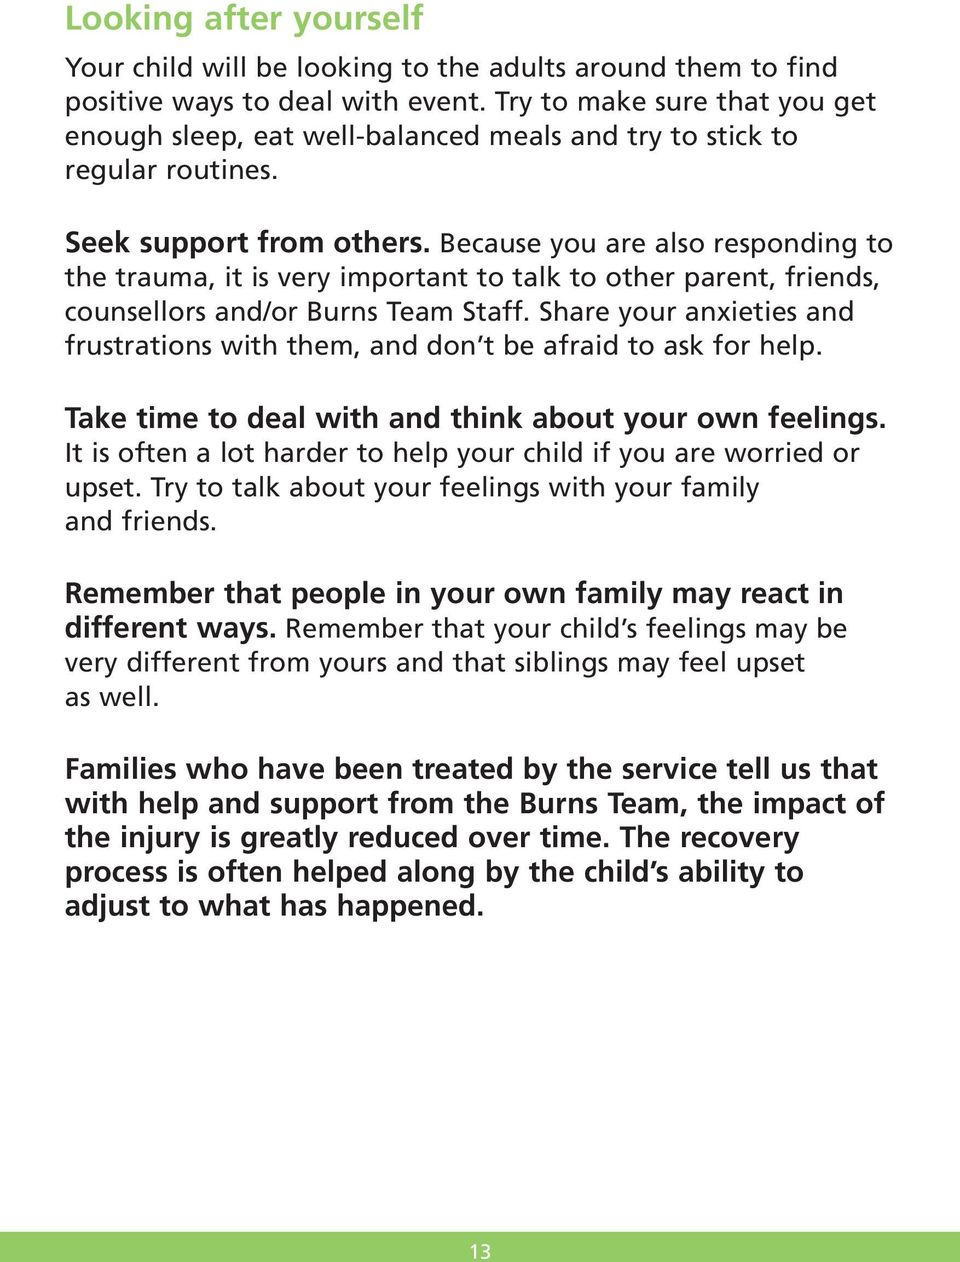 Because you are also responding to the trauma, it is very important to talk to other parent, friends, counsellors and/or Burns Team Staff.